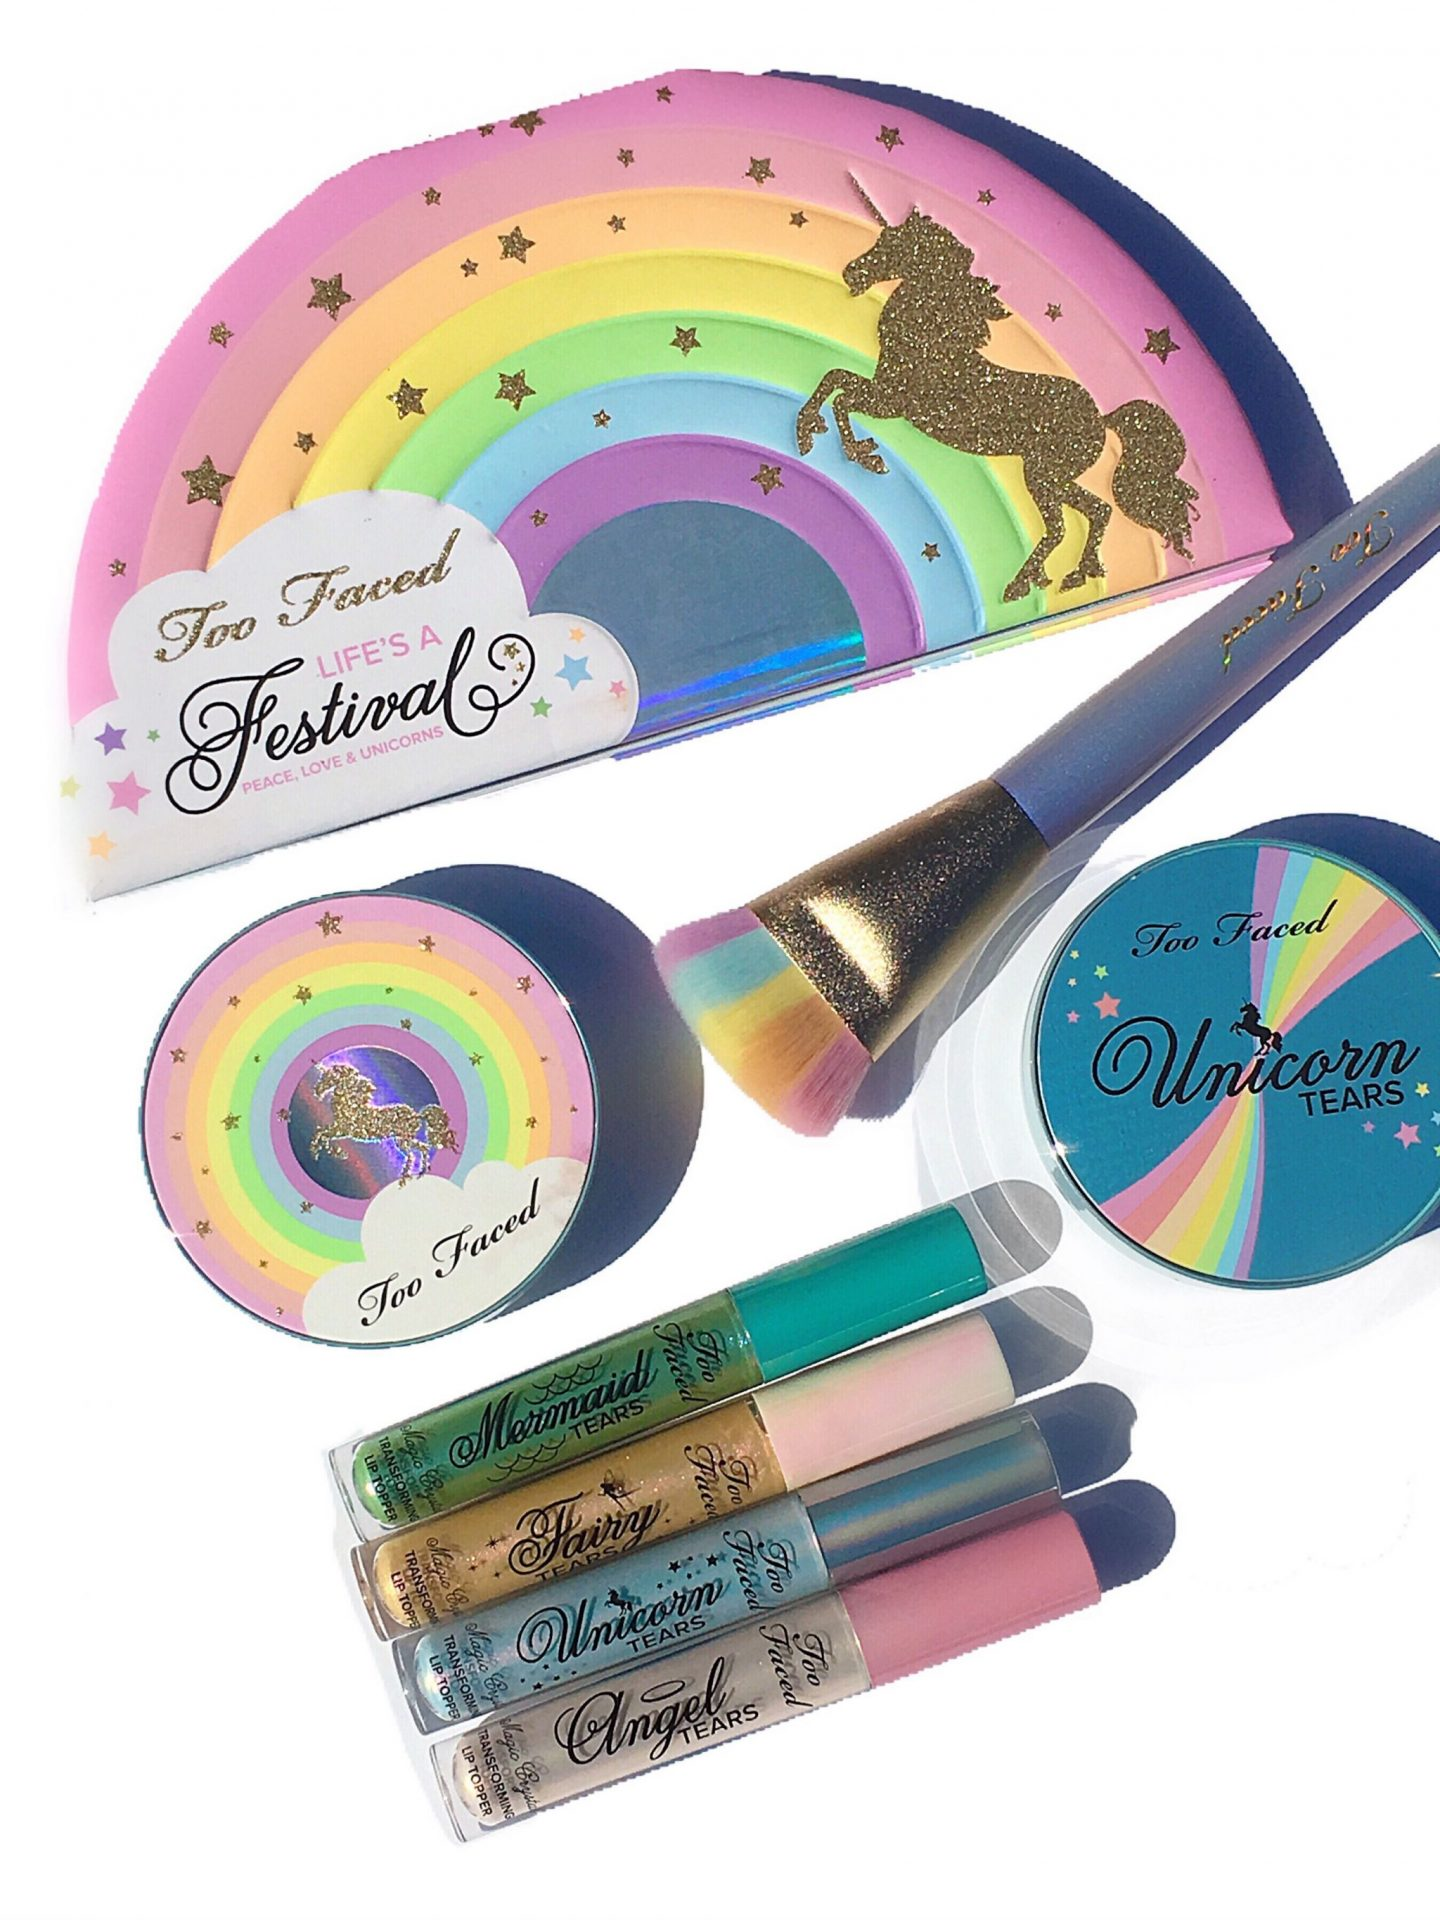 Too Faced Life's a Festival Collection Overview & Swatches